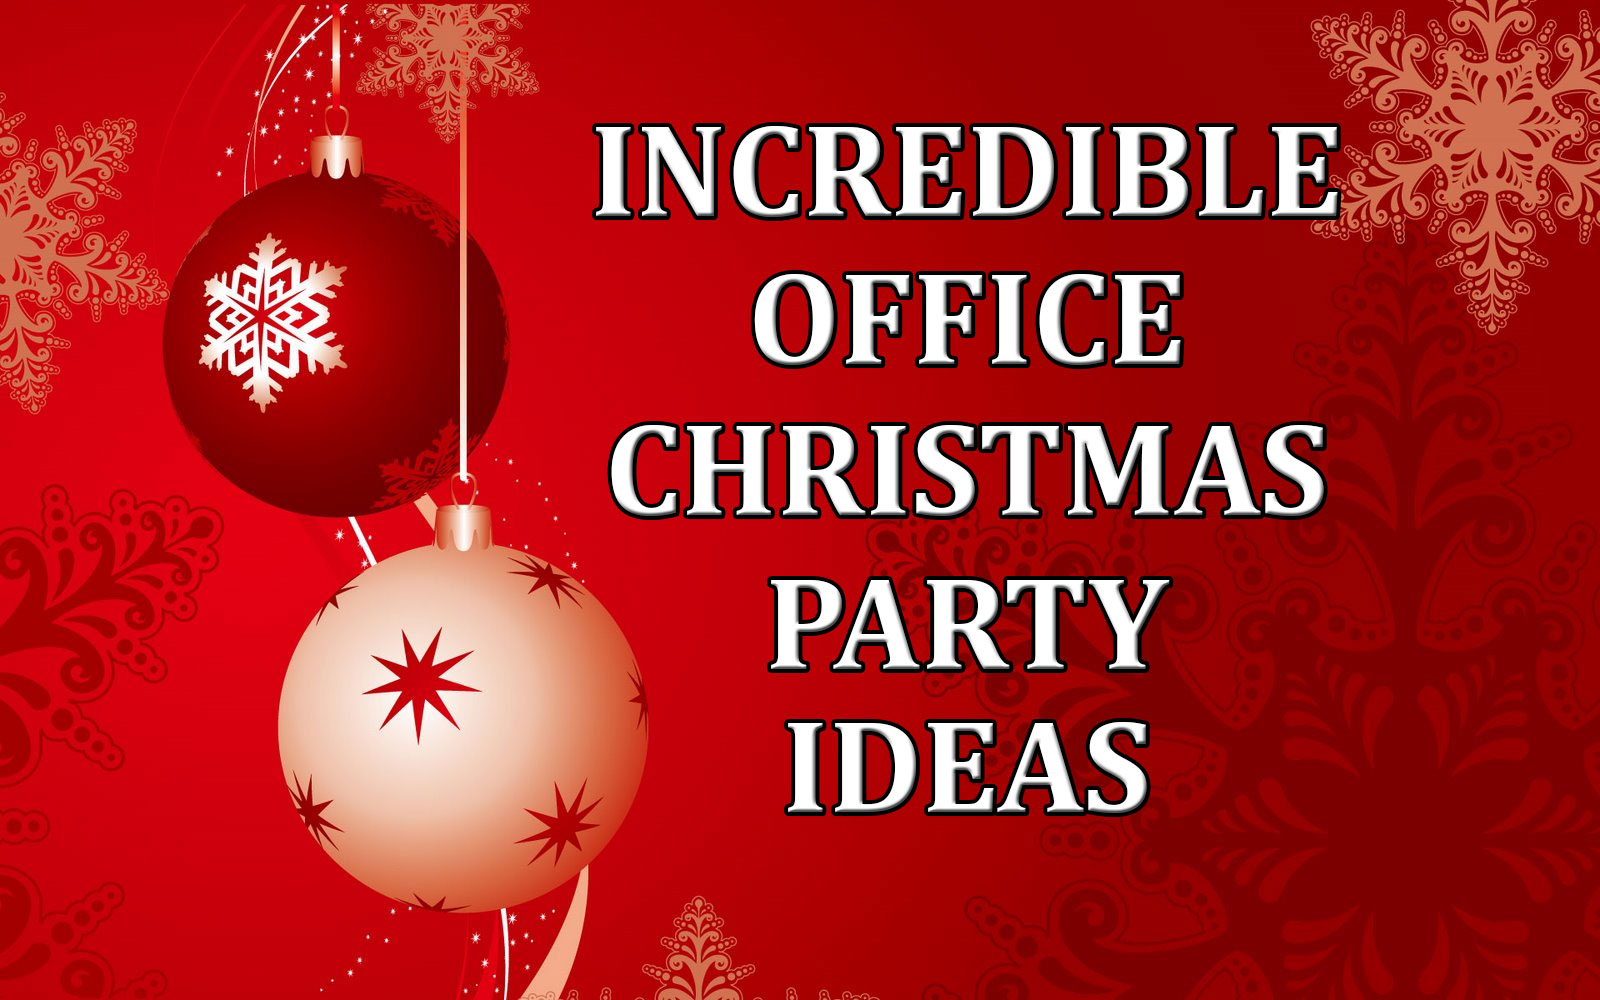 Incredible Office Christmas Party Ideas - Comedy Ventriloquist